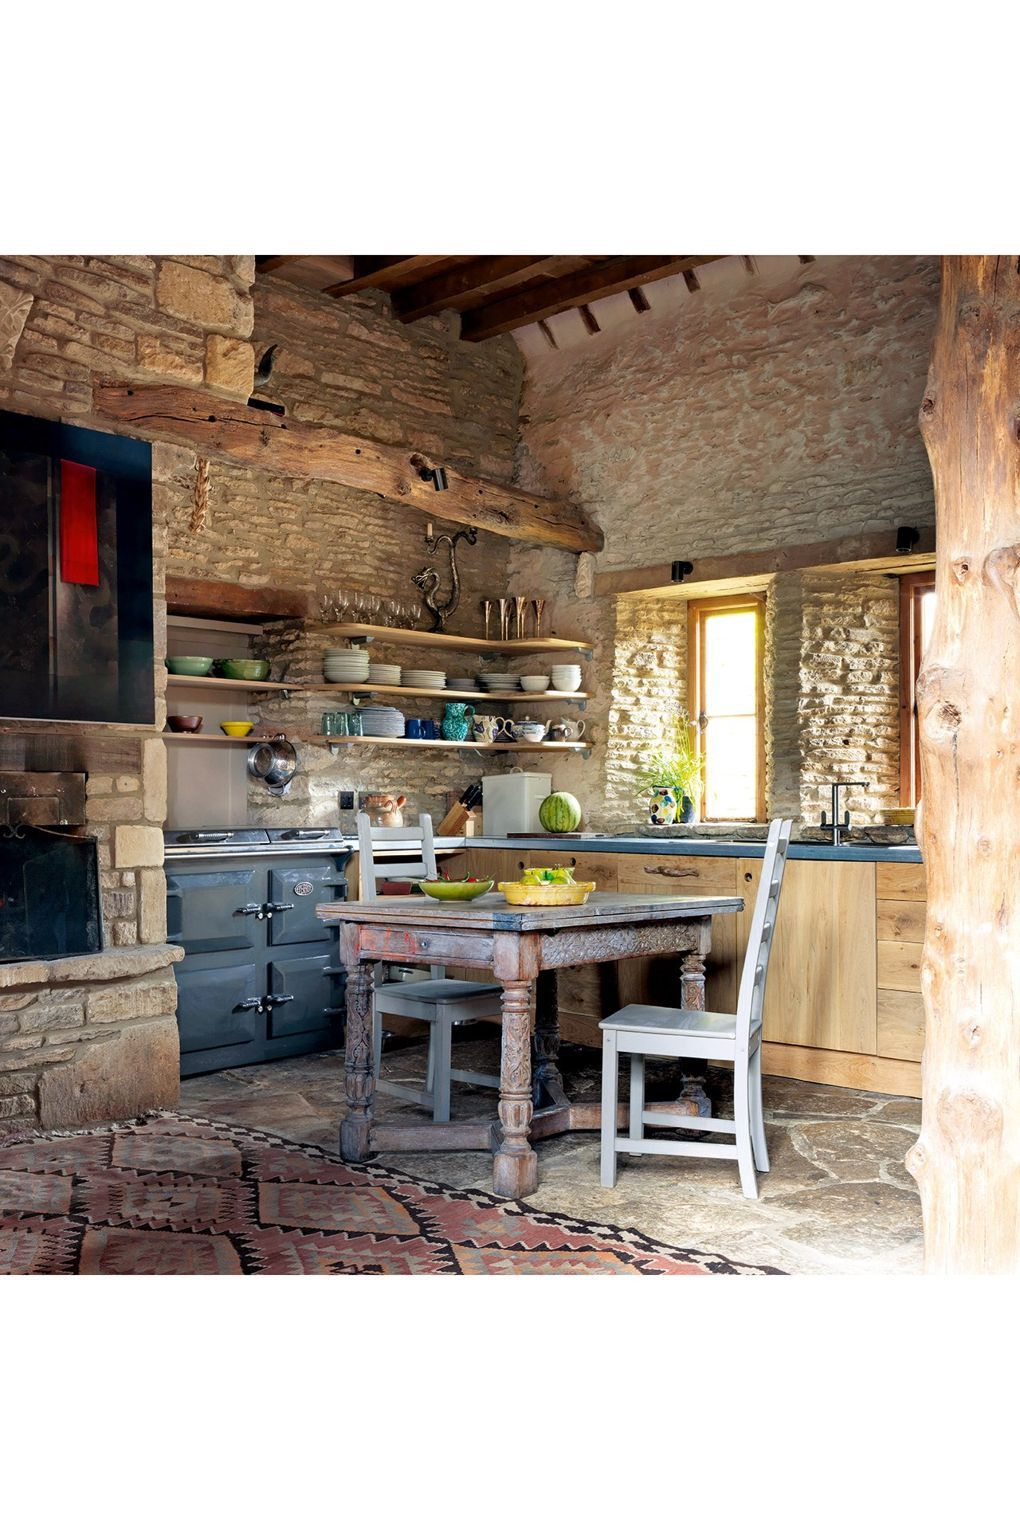 Kitchen ideas Barn kitchen, Rustic kitchen design